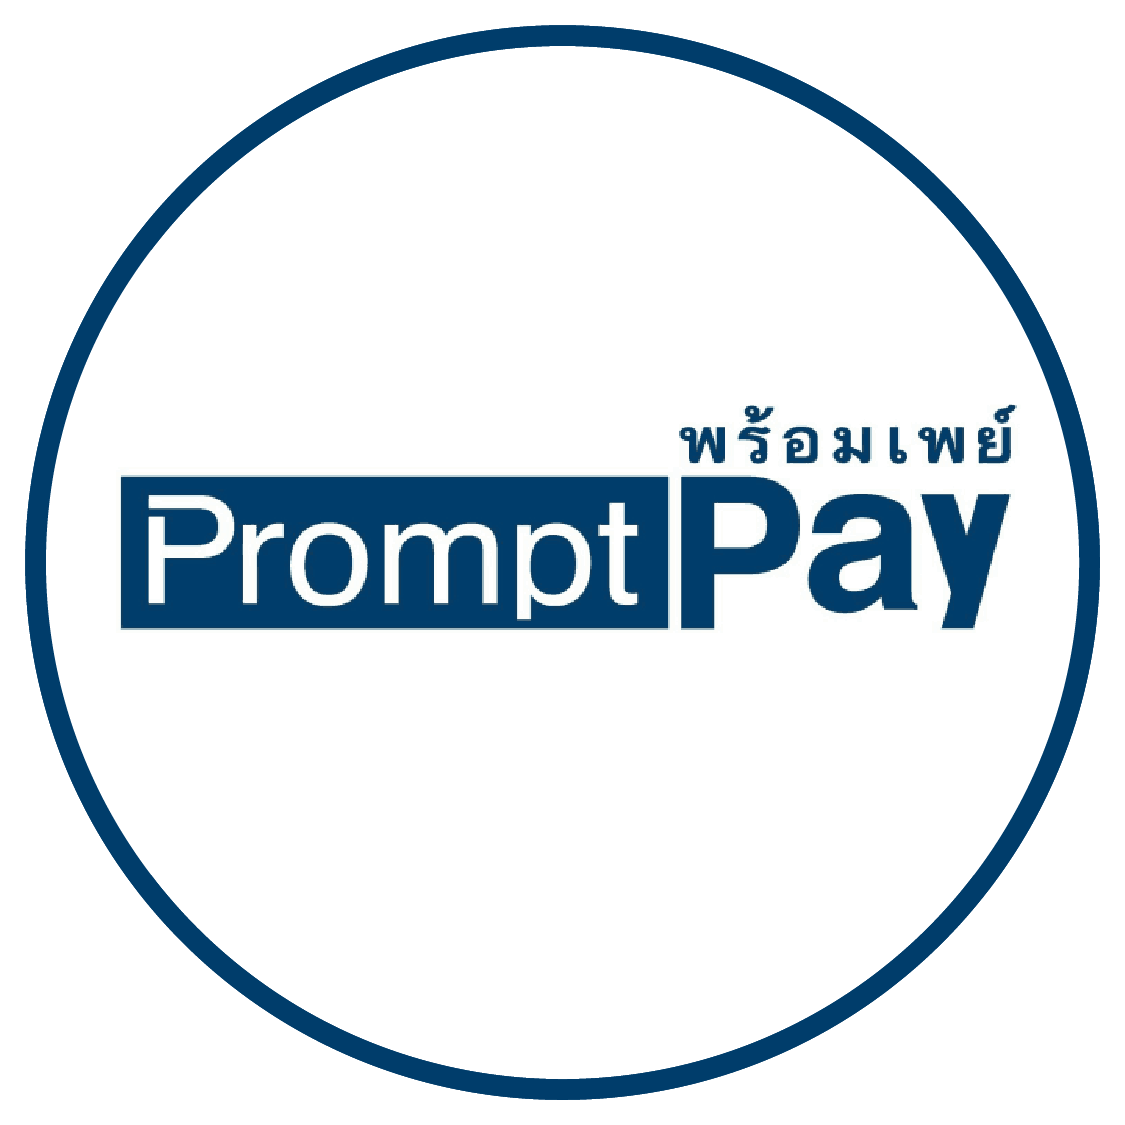 Prompt Pay Rentconnected